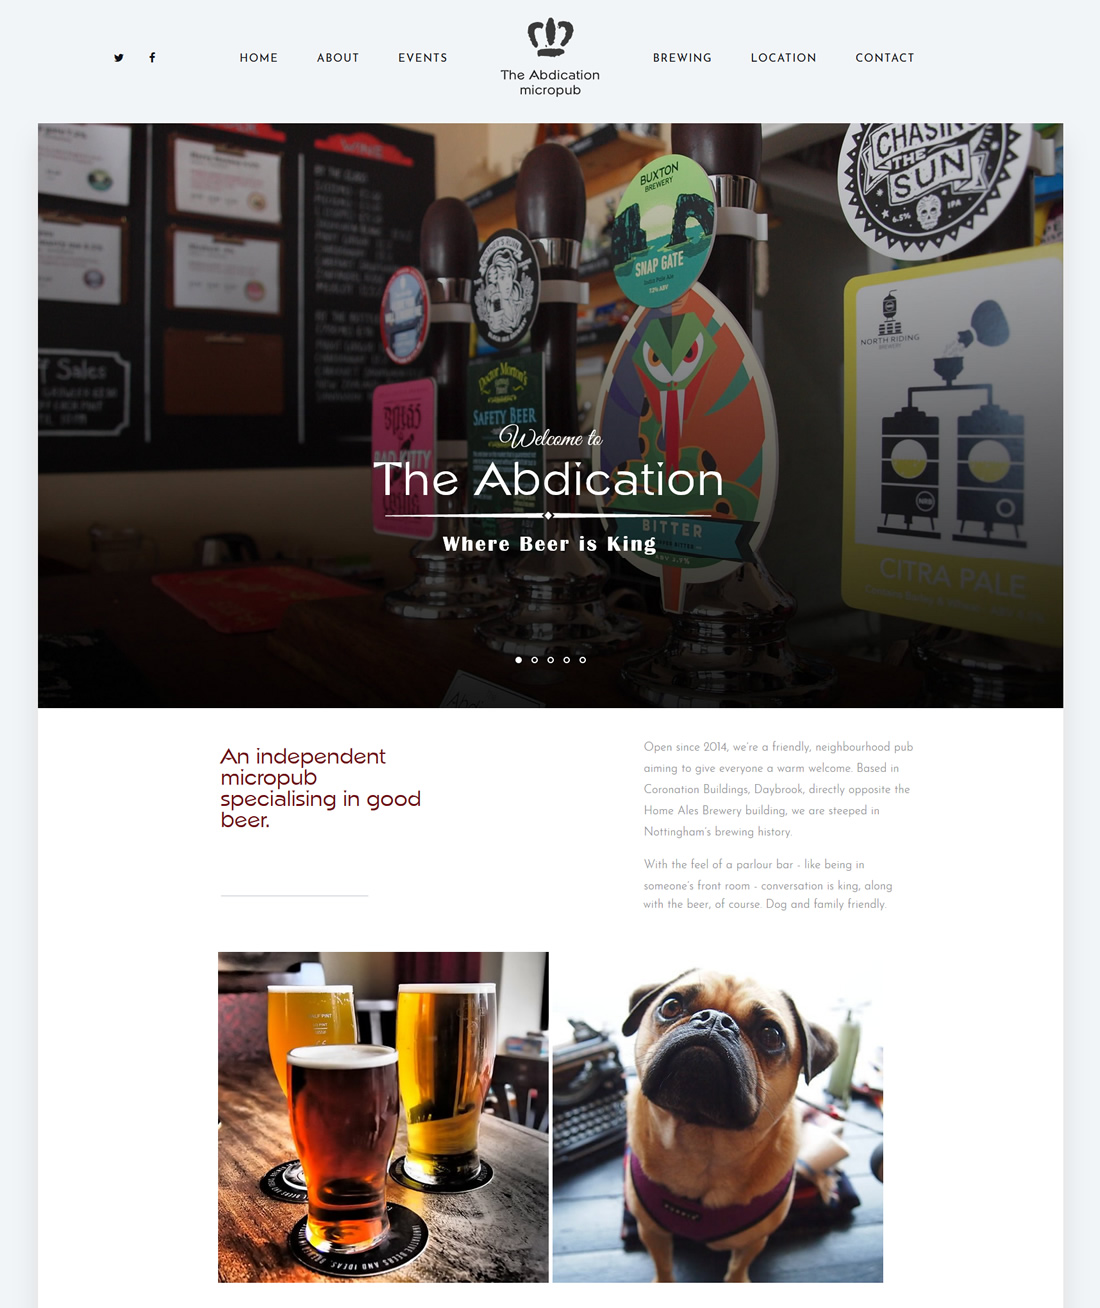 The Abdication Micropub The Abdication Home Page